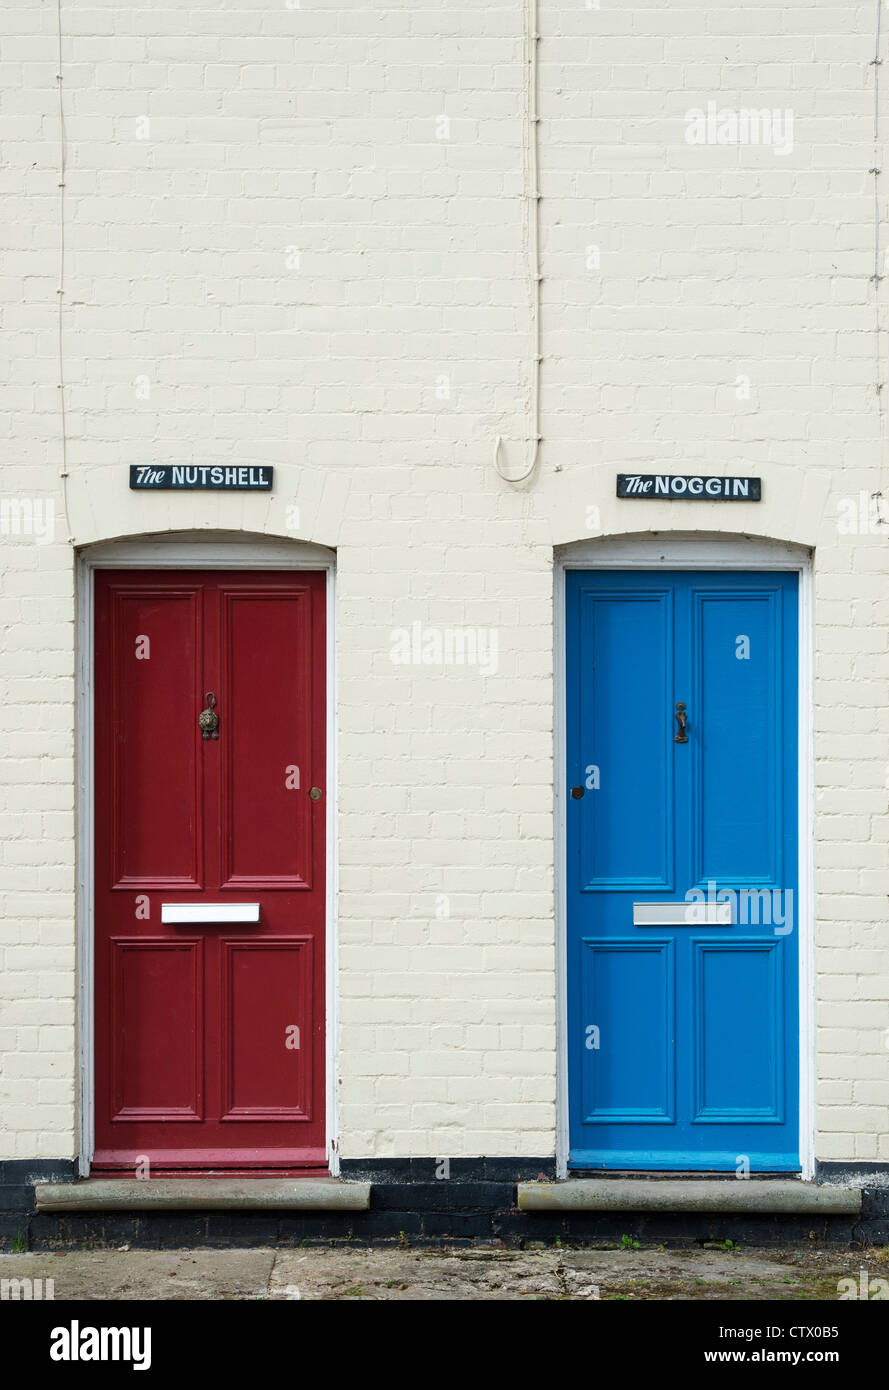 Quirky english colourful front doors and house names. The Noggin and the Nutshell. Eardisland. Herefordshire, England - Stock Image